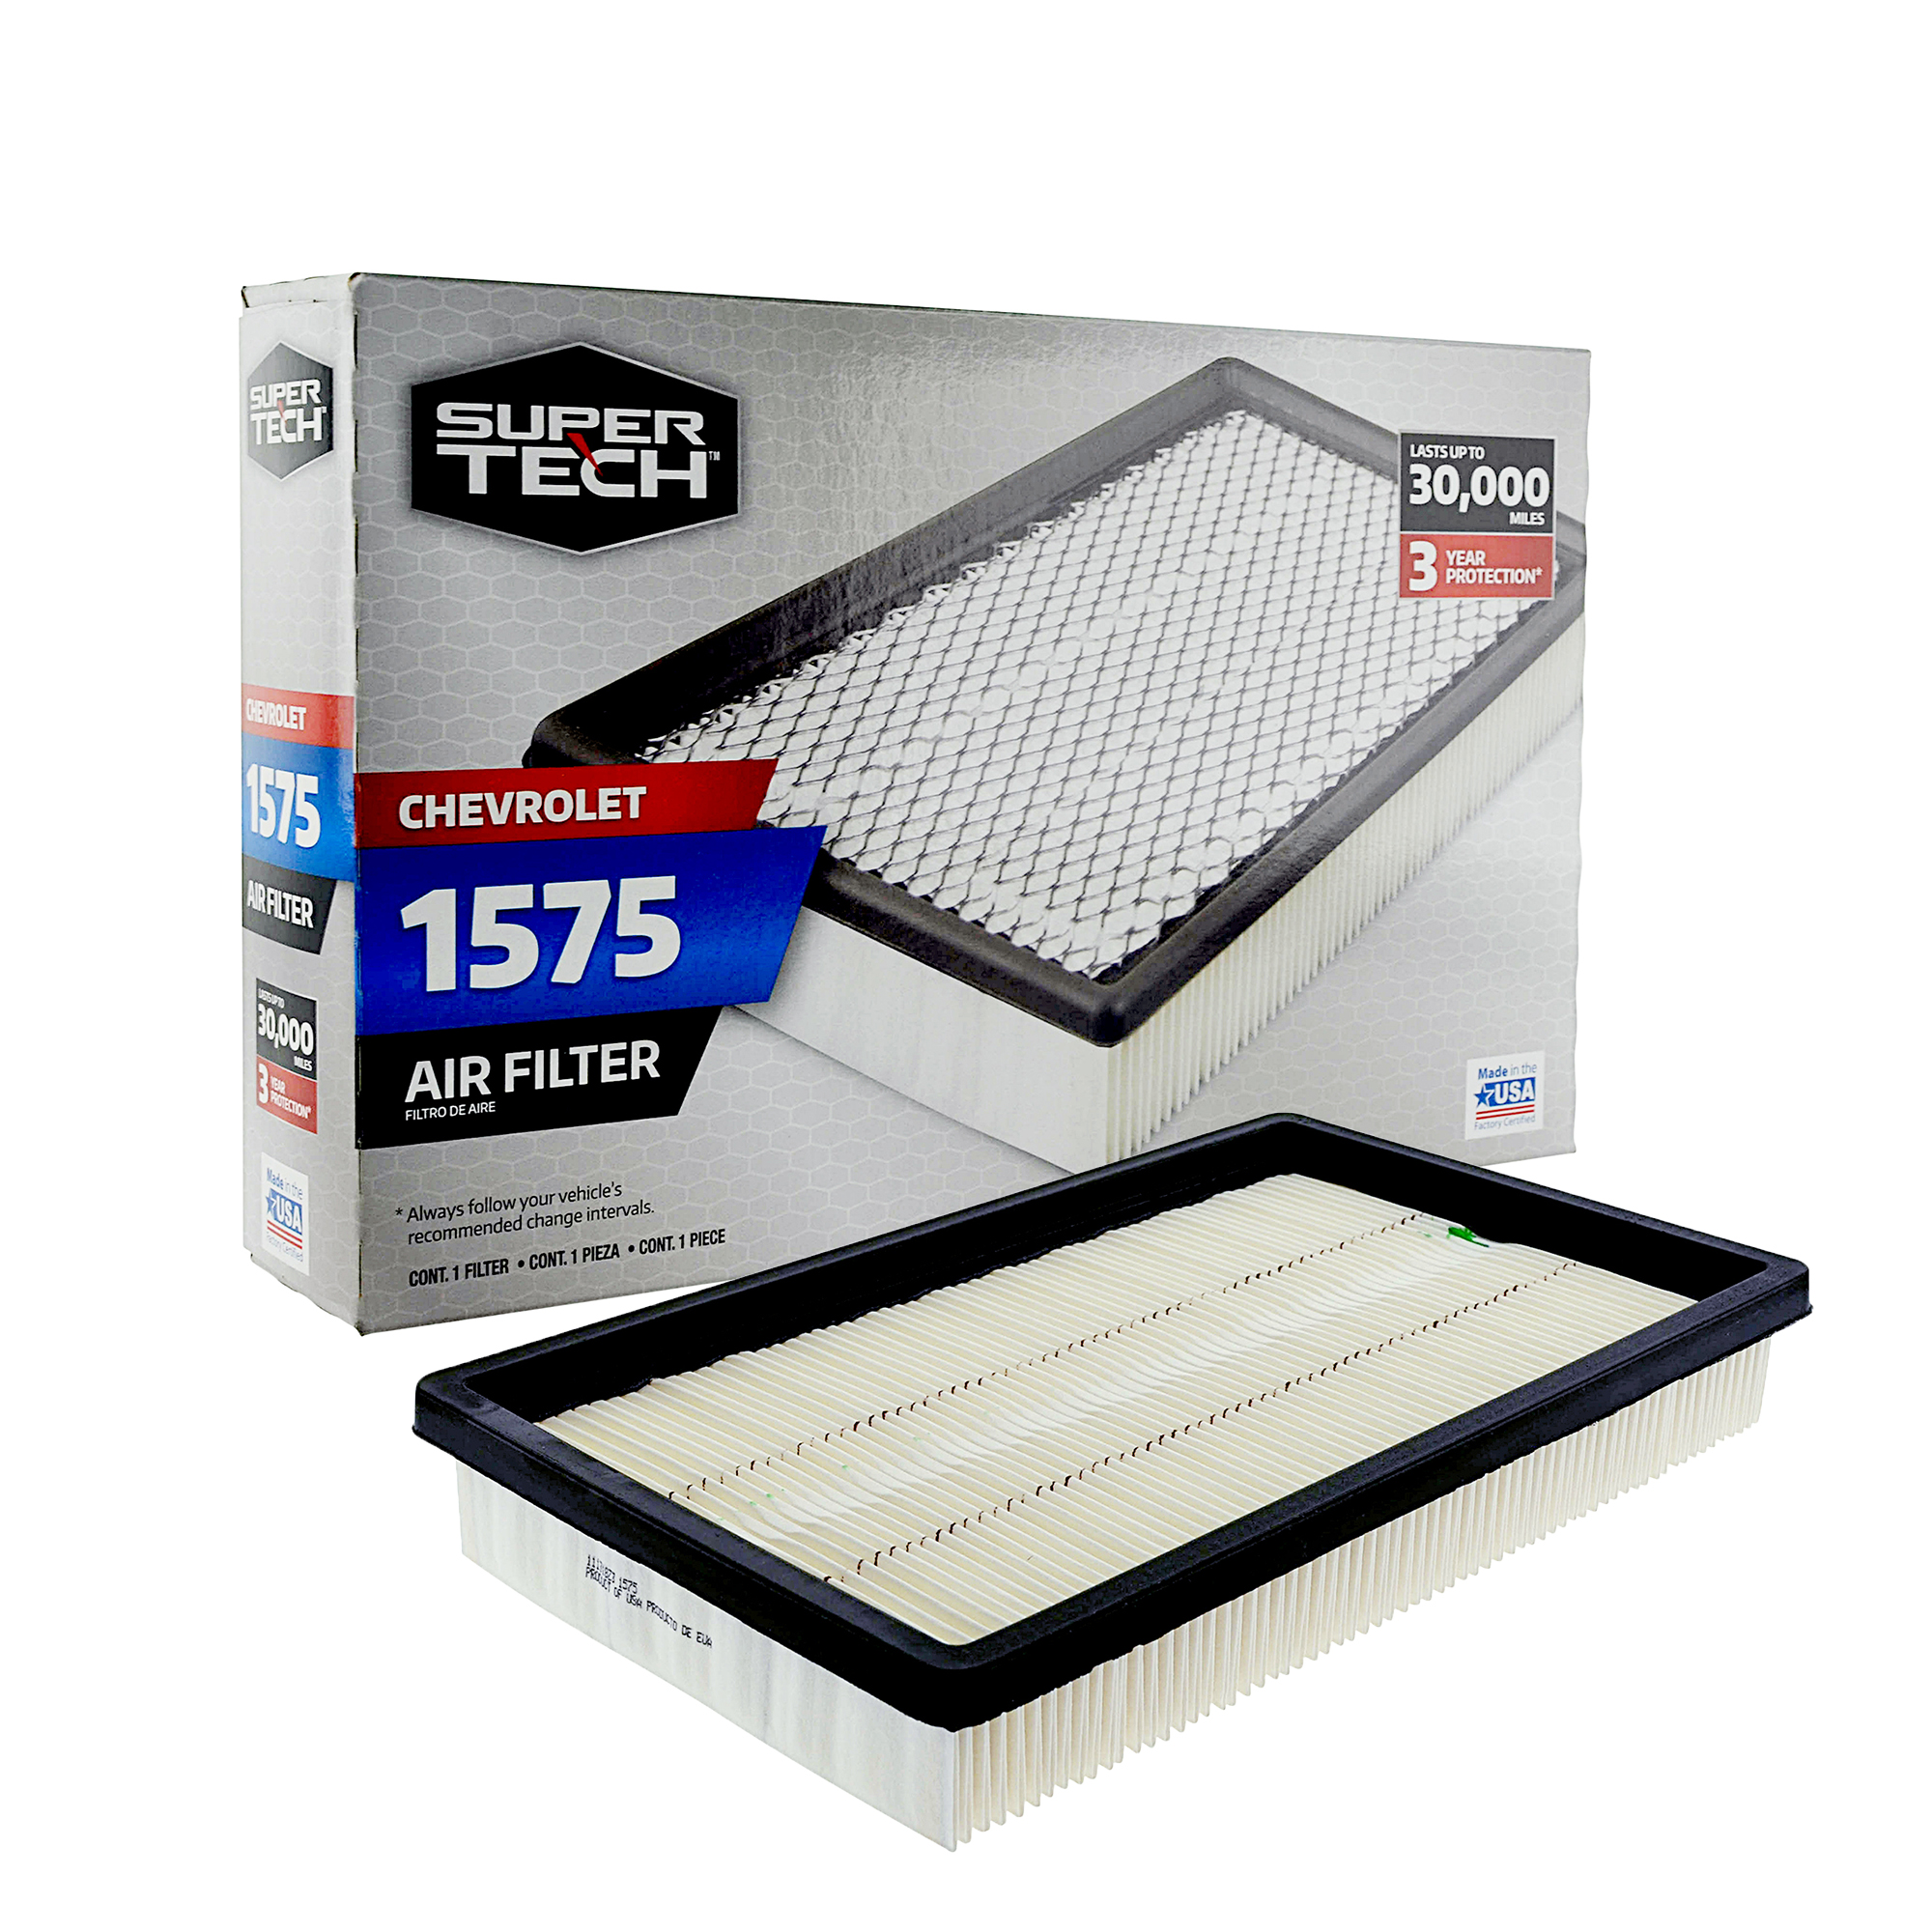 SuperTech 1575 Engine Air Filter, Replacement Filter for GM or Chevrolet